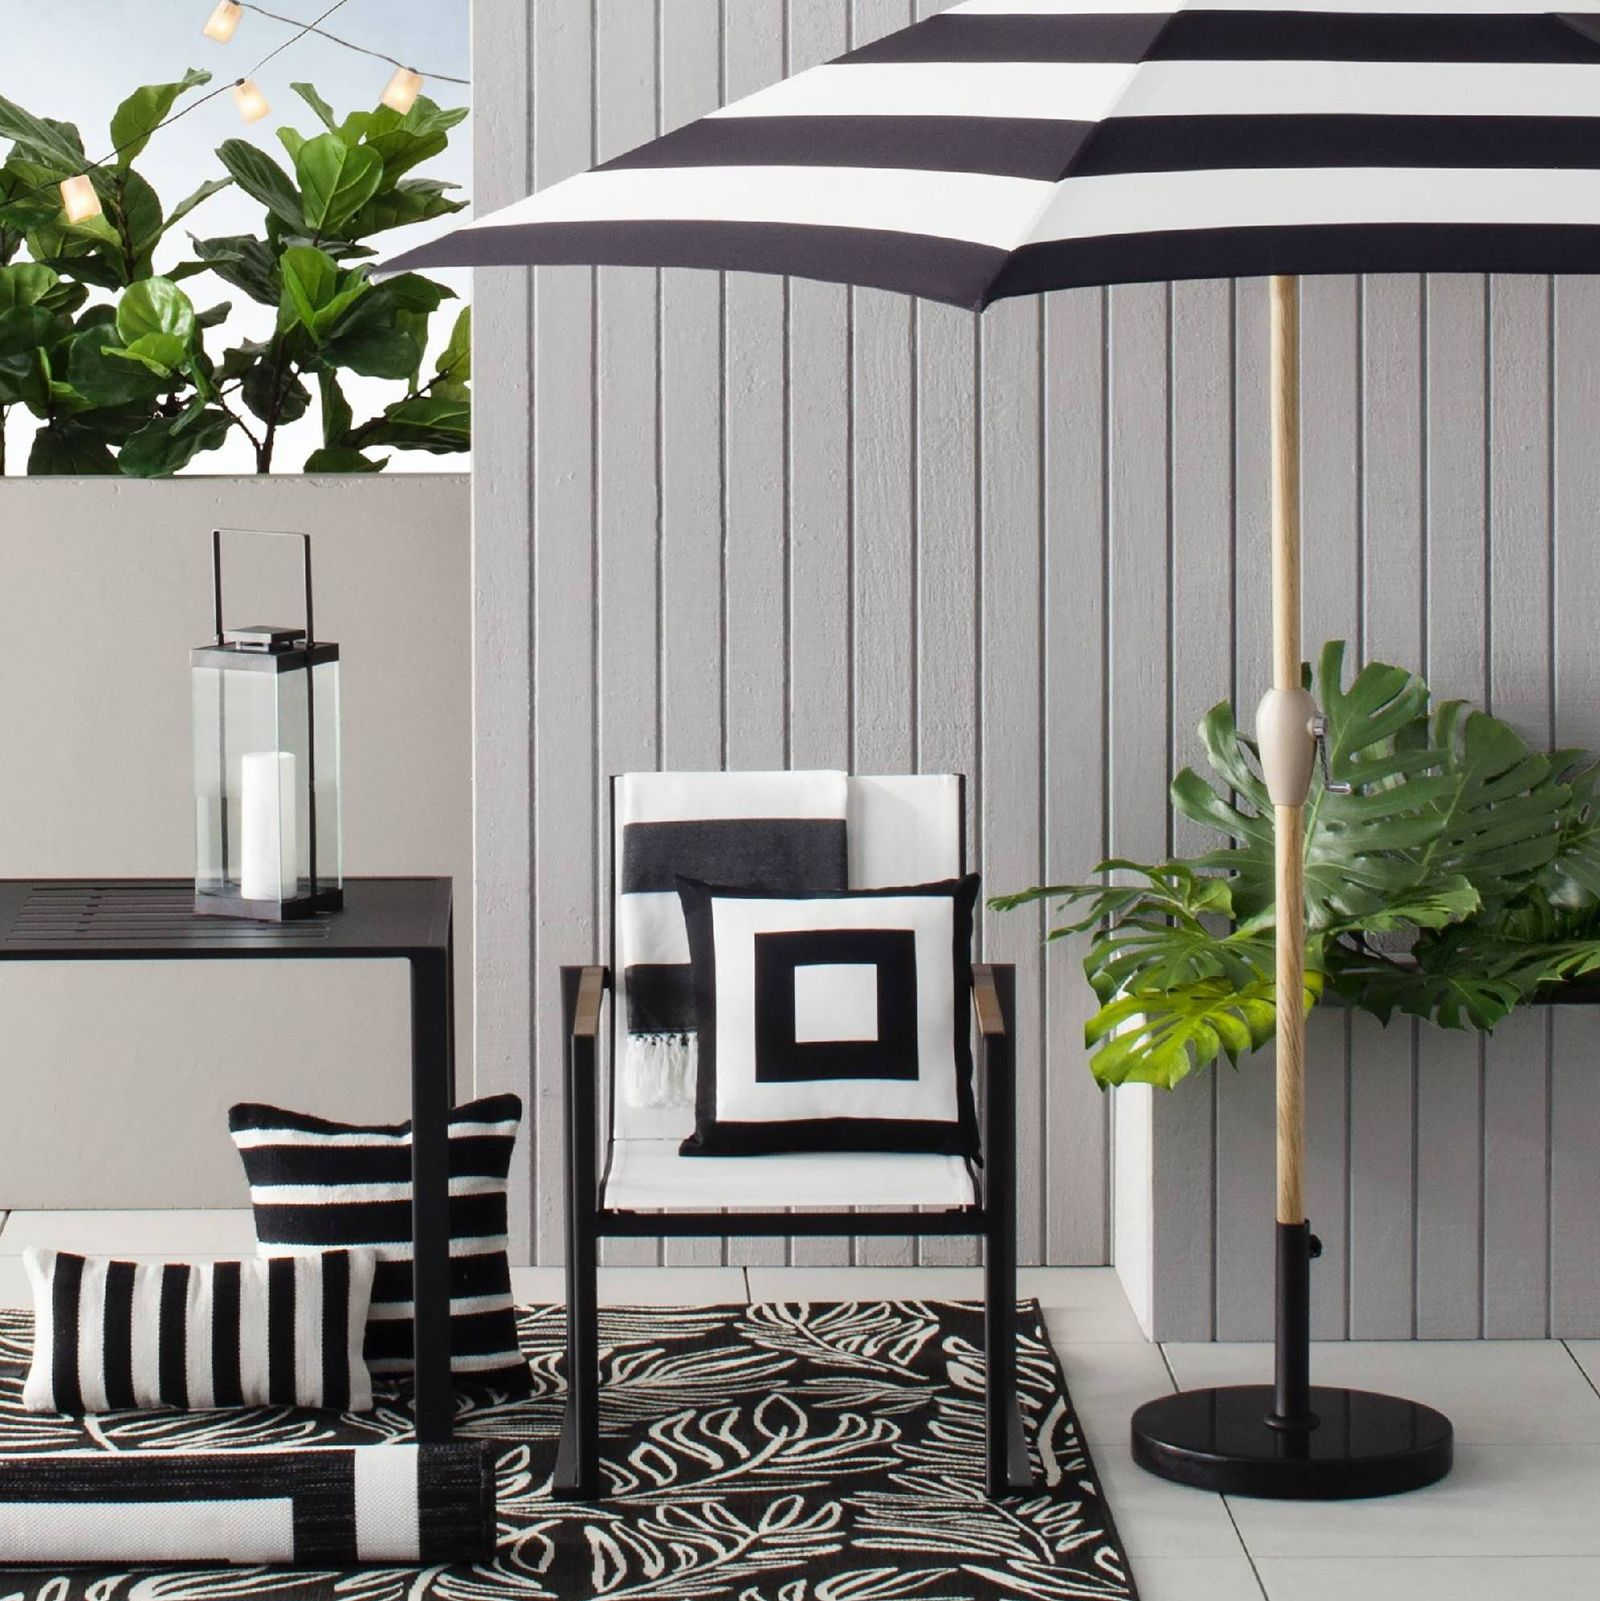 10 Fabulous Black White Outdoor Finds At Target The Tomkat Studio Blog Outdoor Patio Decor Patio Furniture Collection Patio Decor